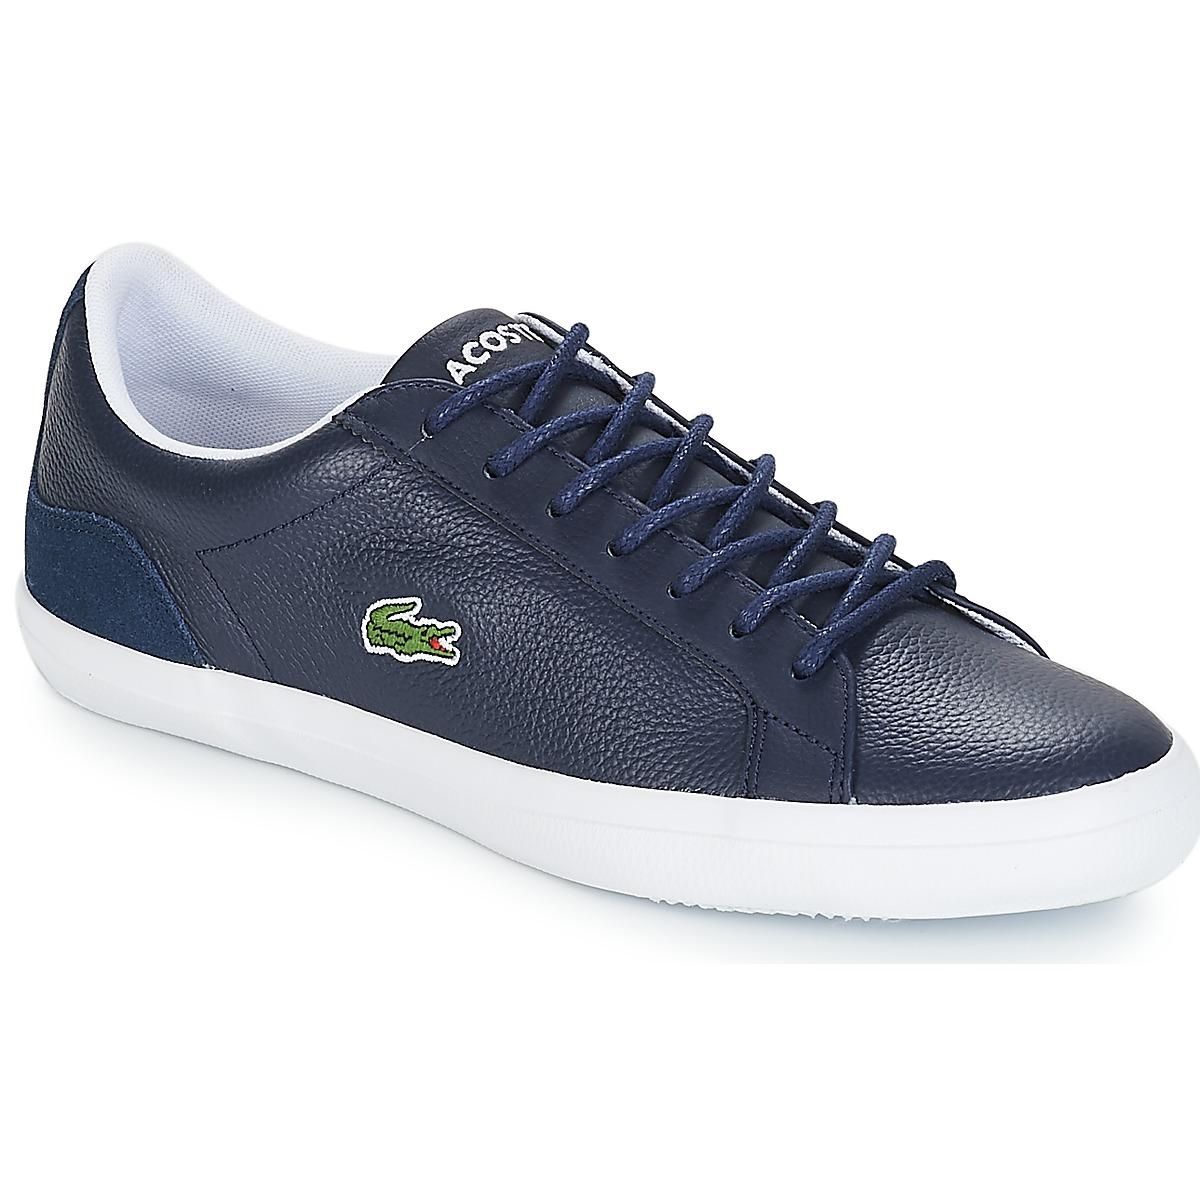 a9b36c48cbc7 Lacoste Lerond 318 3 Shoes (trainers) in Blue for Men - Lyst